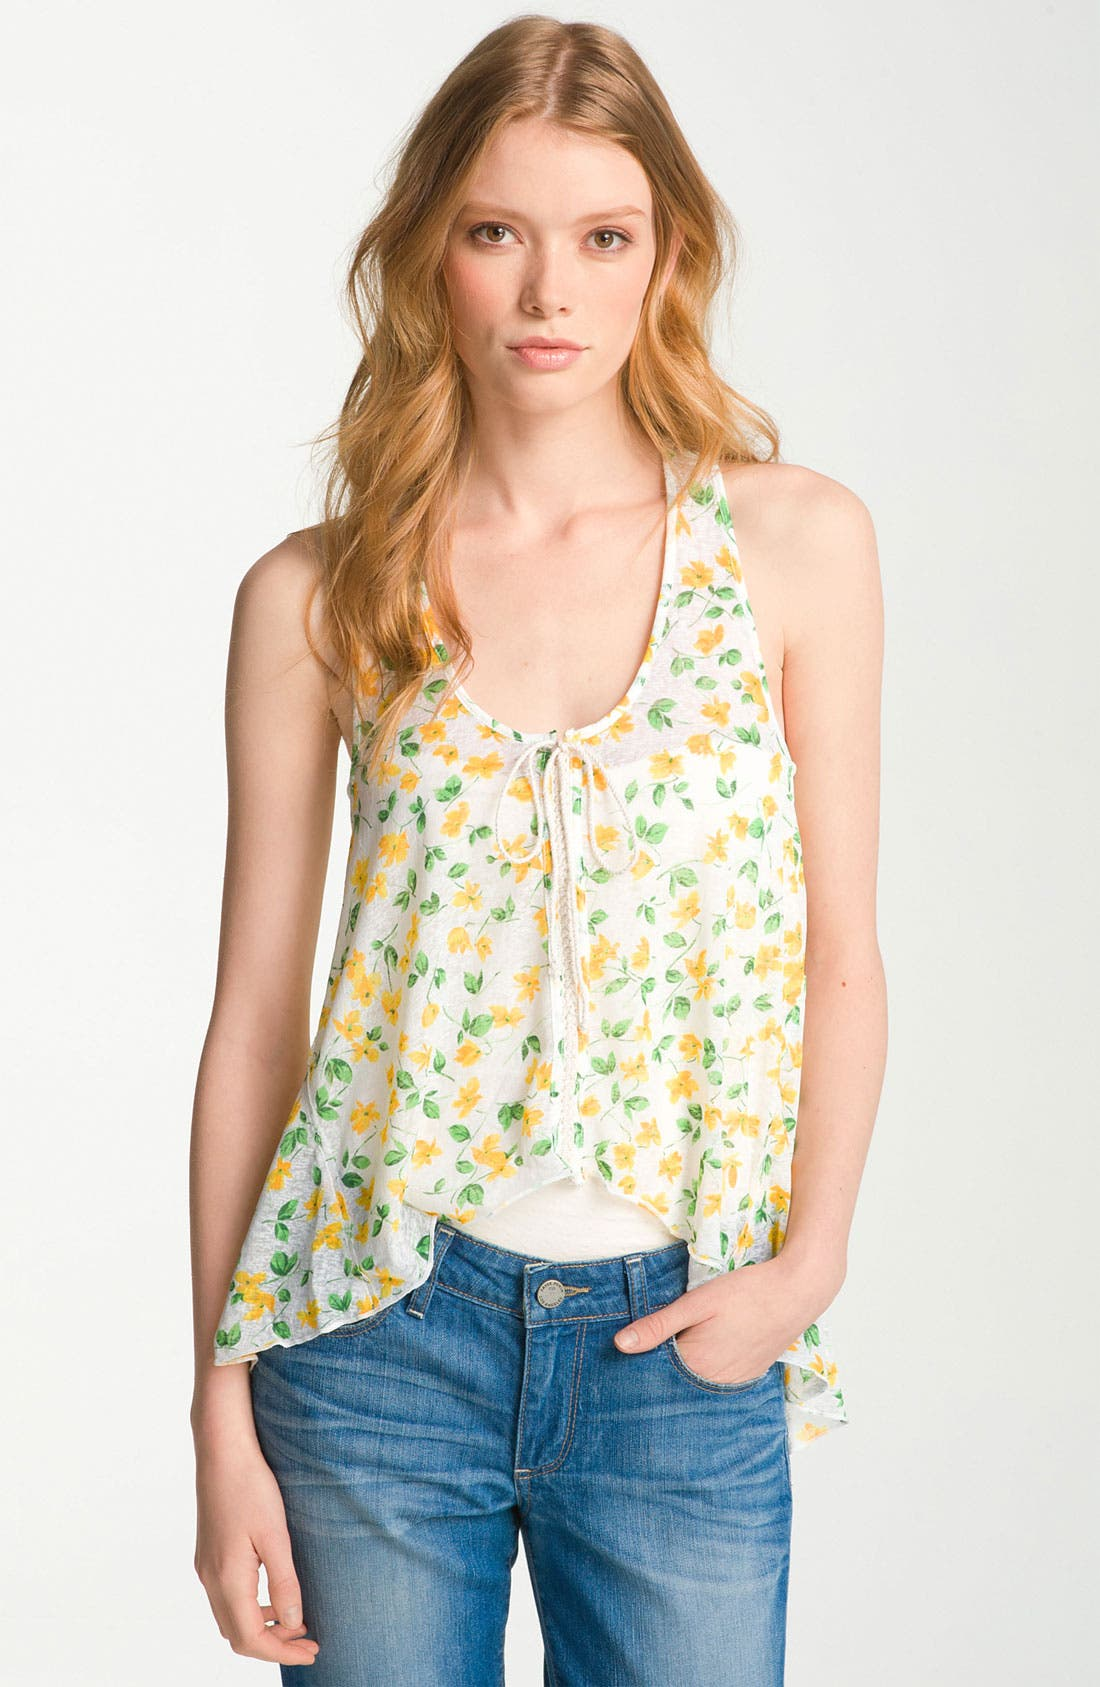 Main Image - Free People 'Izzy' Print Crochet Back Flyaway Tank